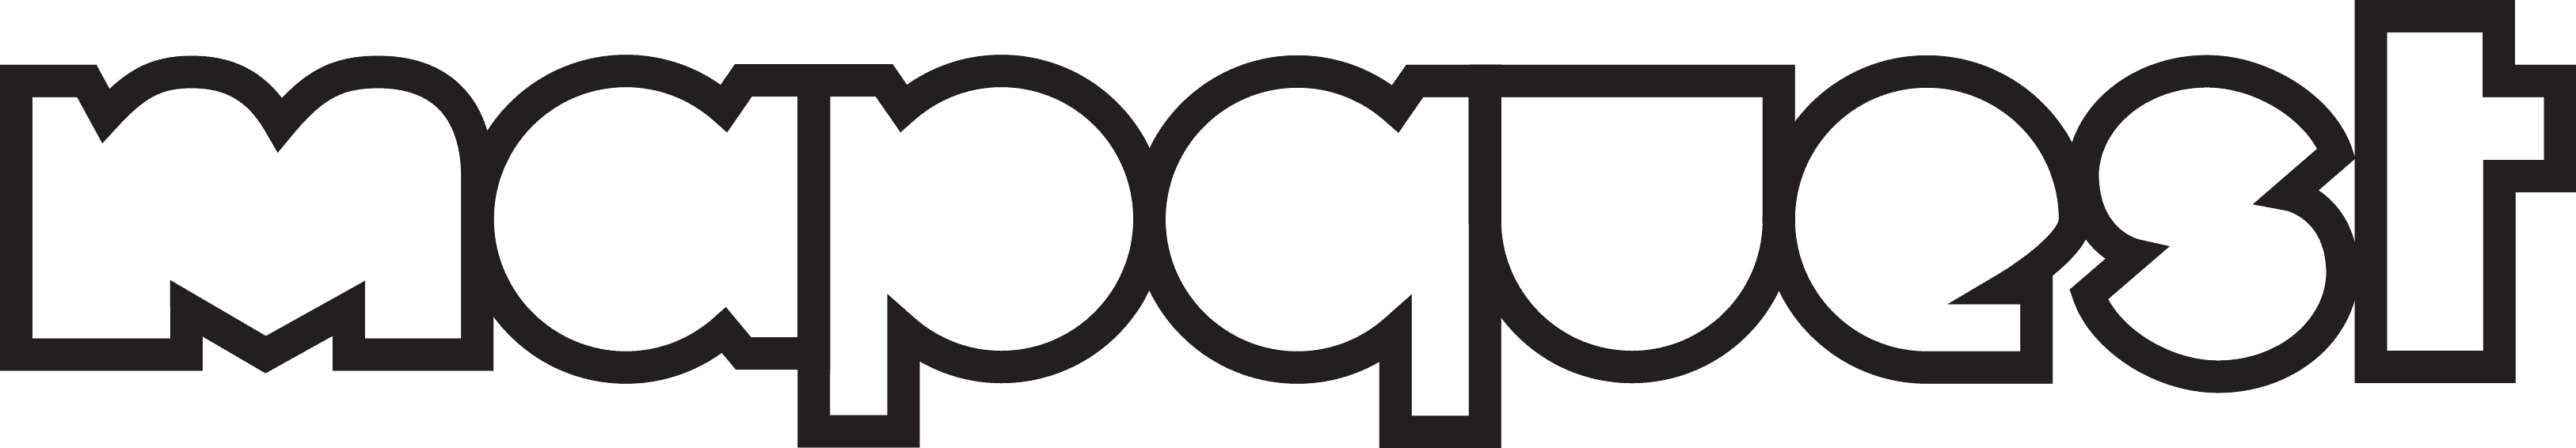 mapquest_logo.png